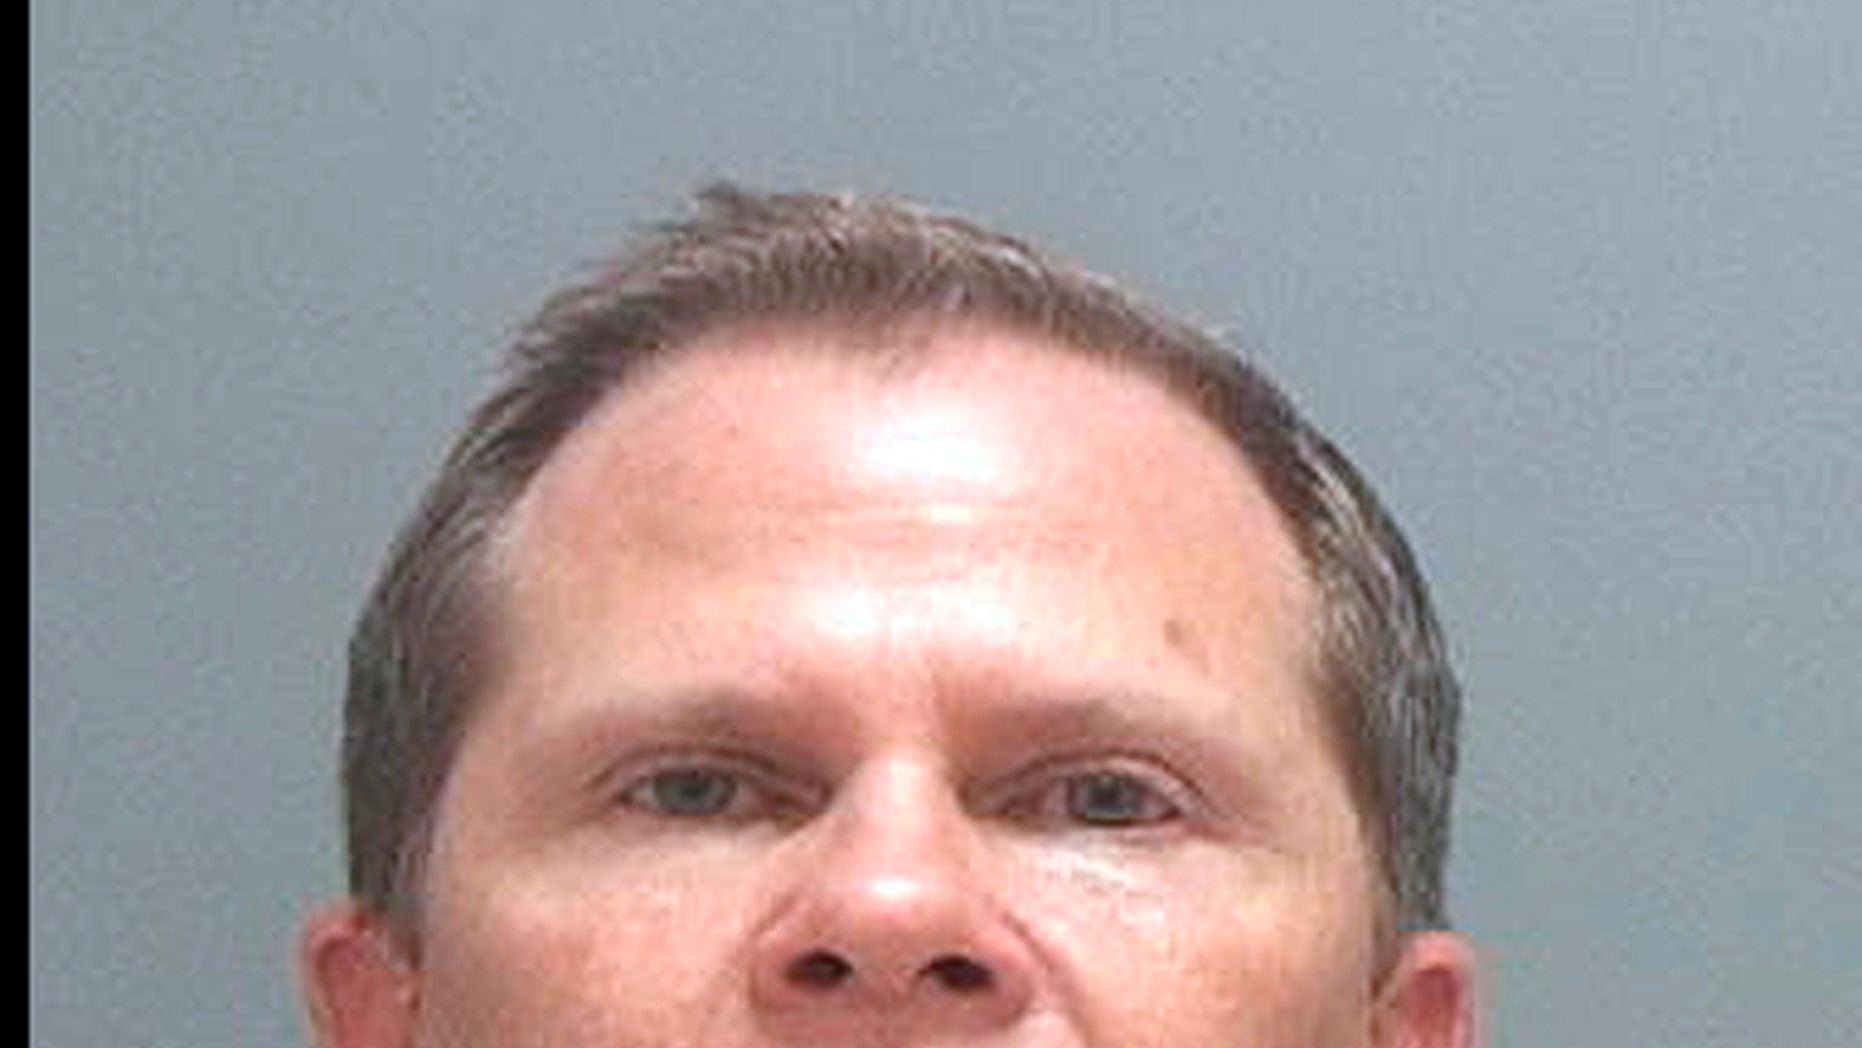 This undated photo released Wednesday, Oct. 30, 2013, by the Salt Lake County Sheriff shows Michael Pascal, 45, of Park City, Utah, who is charged in a criminal complaint from the U.S. Attorney's Office in Utah with abusive sexual contact. Pascal, an airline pilot riding as a passenger on Oct. 26, is facing federal charges after being accused of groping a 14-year-old girl while he was a passenger on a flight from Detroit to Salt Lake City. (AP Photo/Salt Lake County Sheriff)